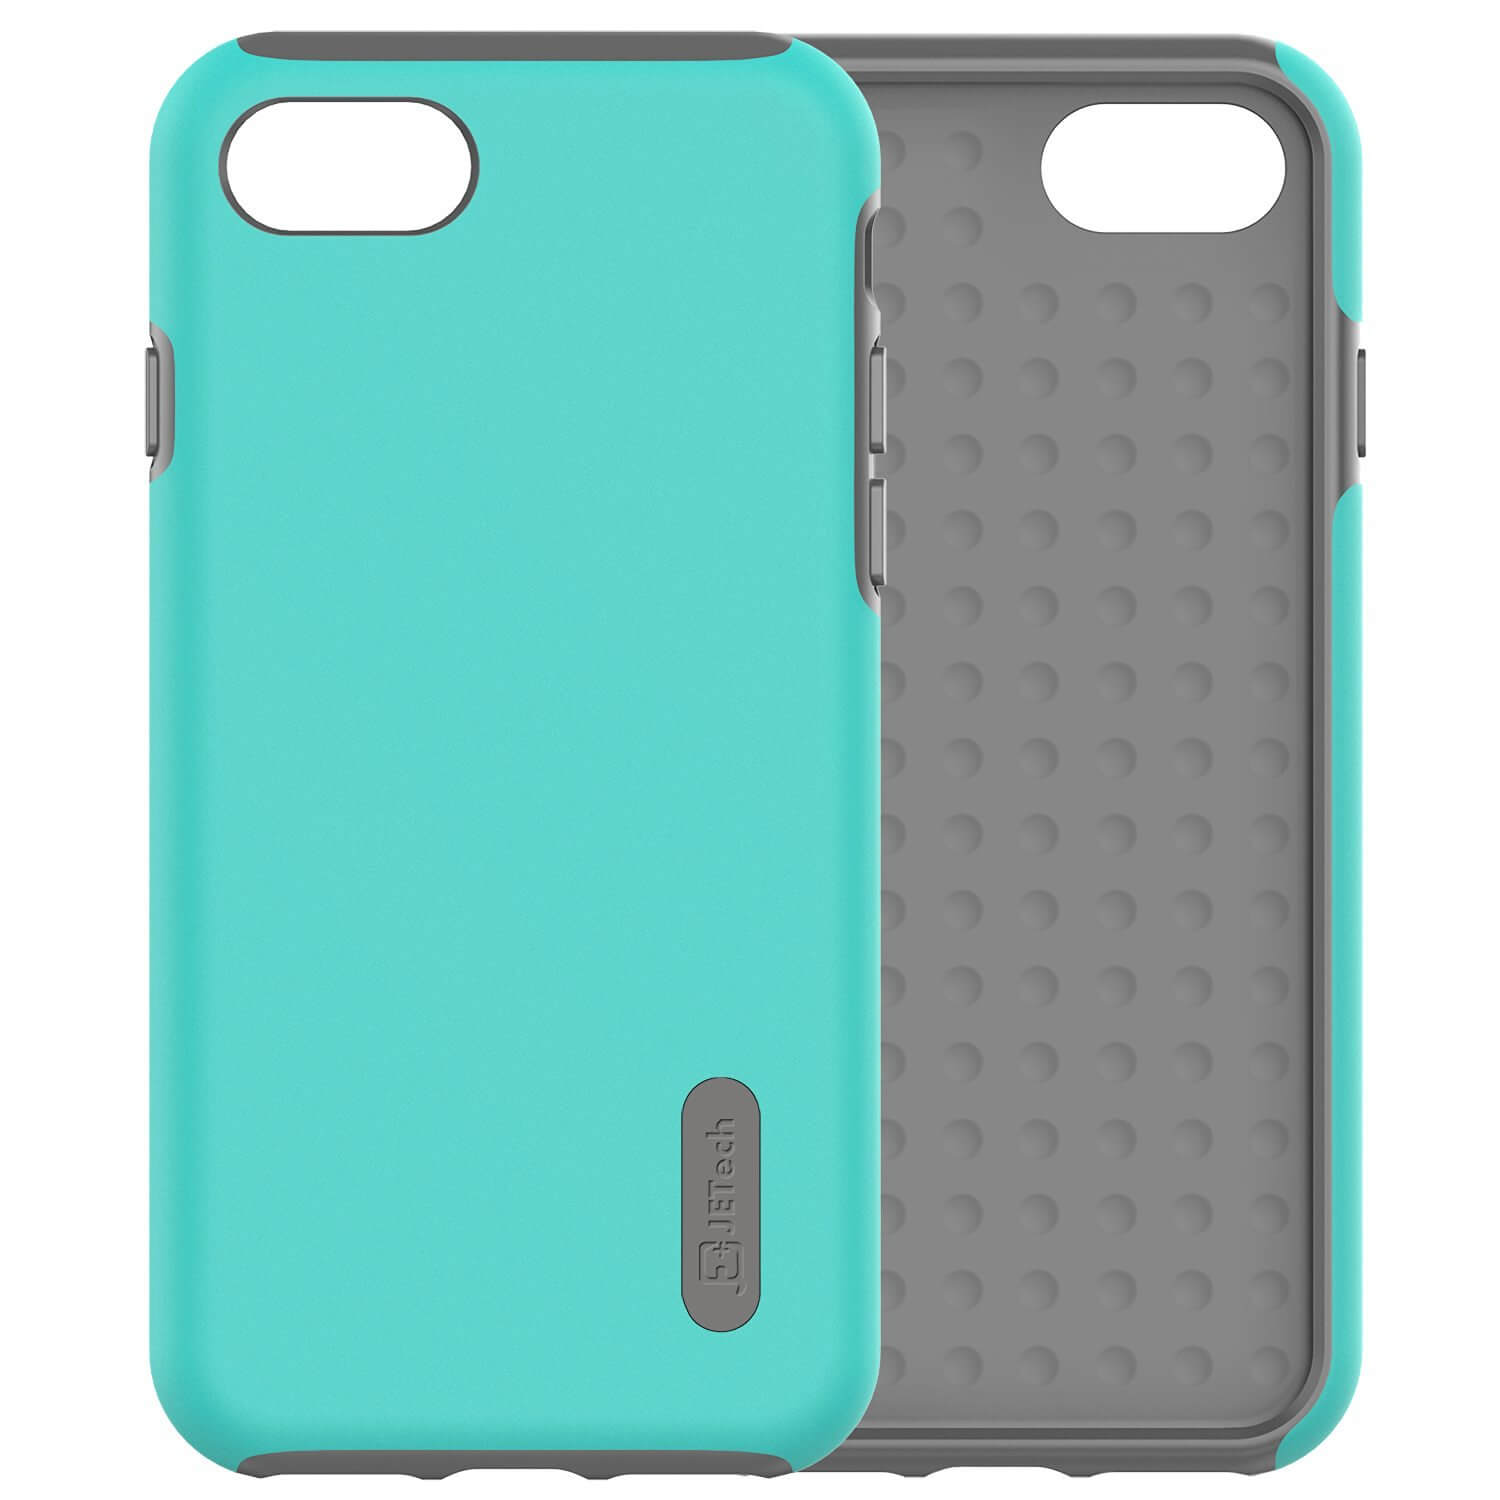 Best Apple iPhone 7 Cases - Complete Protection For Your Phone